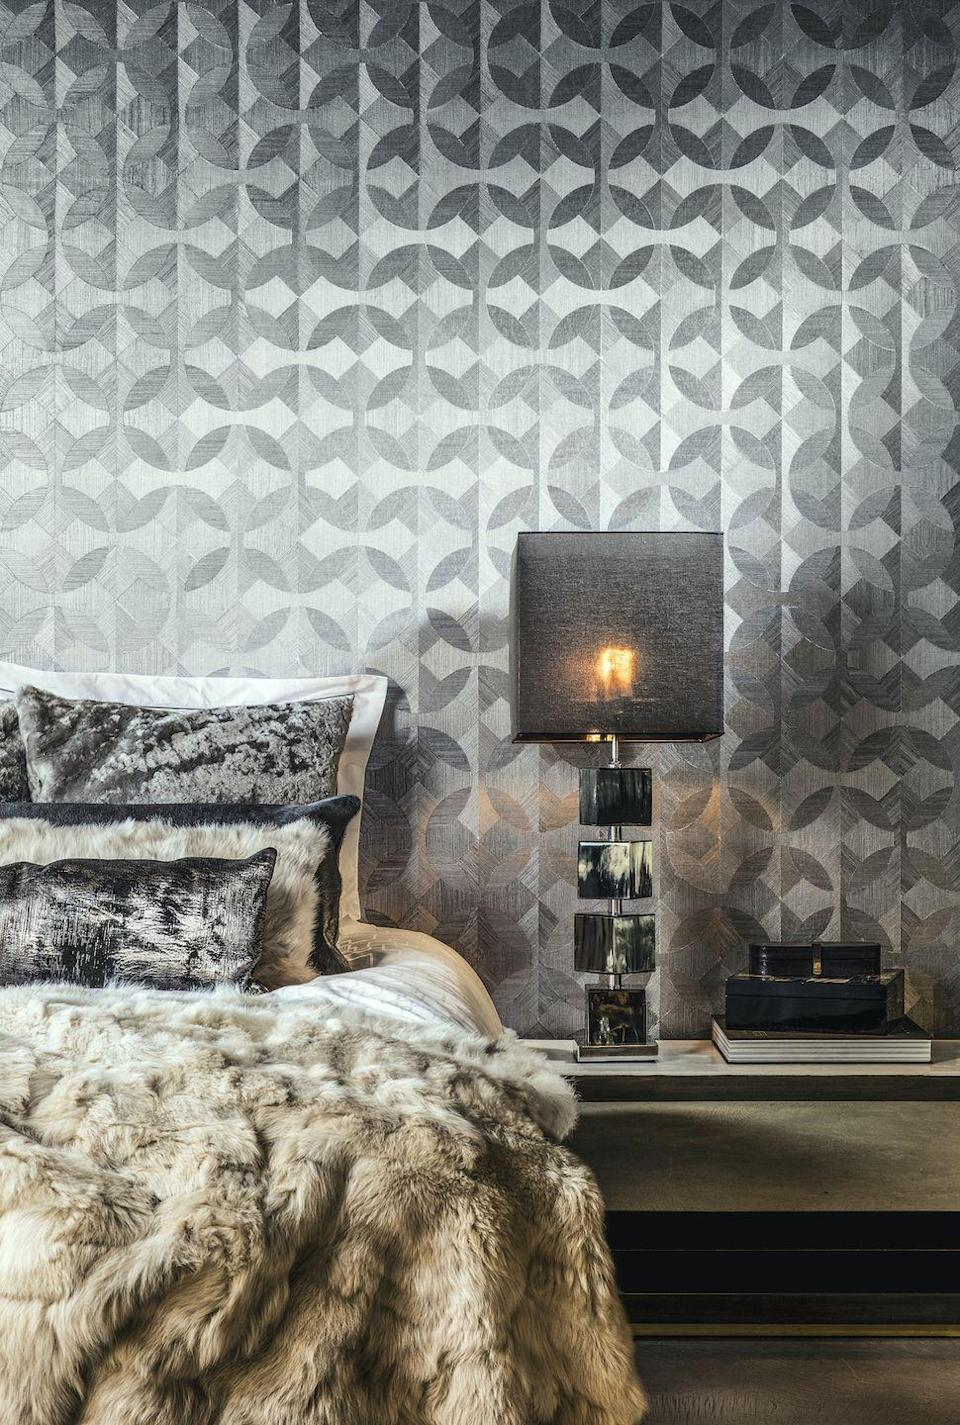 """<p>Wallpaper is a great way to add grey to a bedroom, and there are some fantastic designs around. The contrasting lines and colour variations in this geo pattern give an extra dimension to the design, making it look like an optical illusion. It also has a subtle shine which reflects the light. It makes a great backdrop to the bed, and the fur throw and cushions look SO luxurious.</p><p>Pictured: <a href=""""https://www.arte-international.com/en/collections/oculaire/unite"""" rel=""""nofollow noopener"""" target=""""_blank"""" data-ylk=""""slk:Unite 80602 Oculaire wallcovering, Arte"""" class=""""link rapid-noclick-resp"""">Unite 80602 Oculaire wallcovering, Arte</a></p>"""